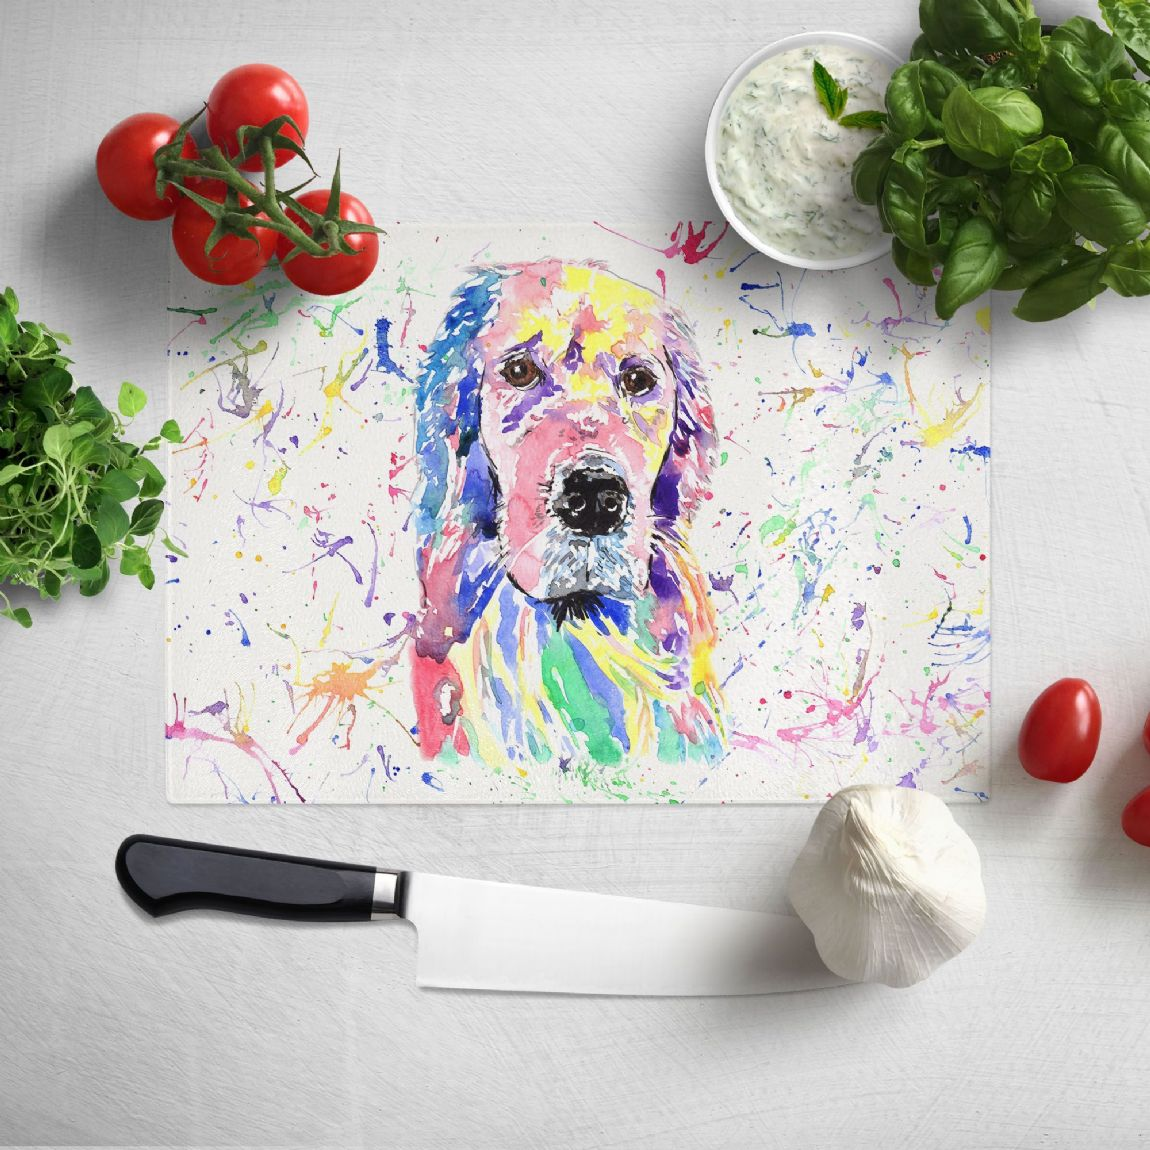 Glass worktop saver/chopping board (Golden retriever))